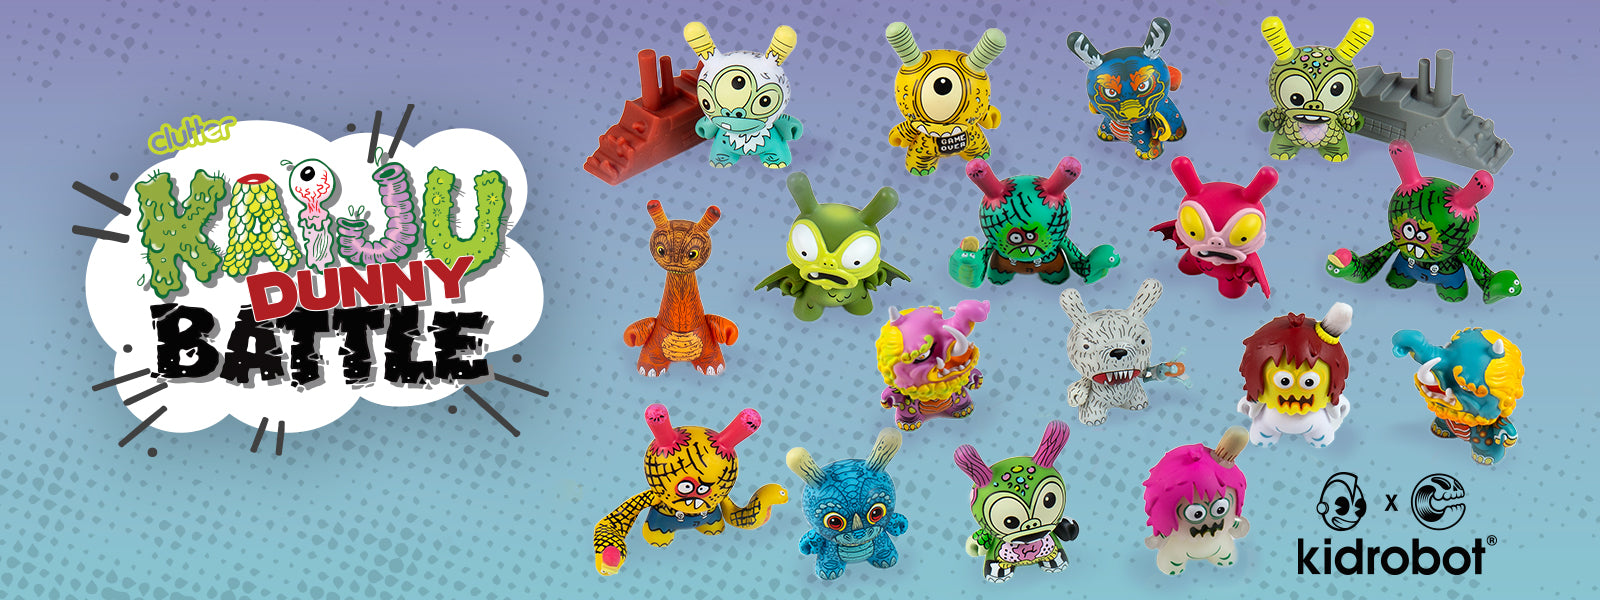 Kaiju Dunny Battle Mini Series by Kidrobot x Clutter - Dunny Art Toys